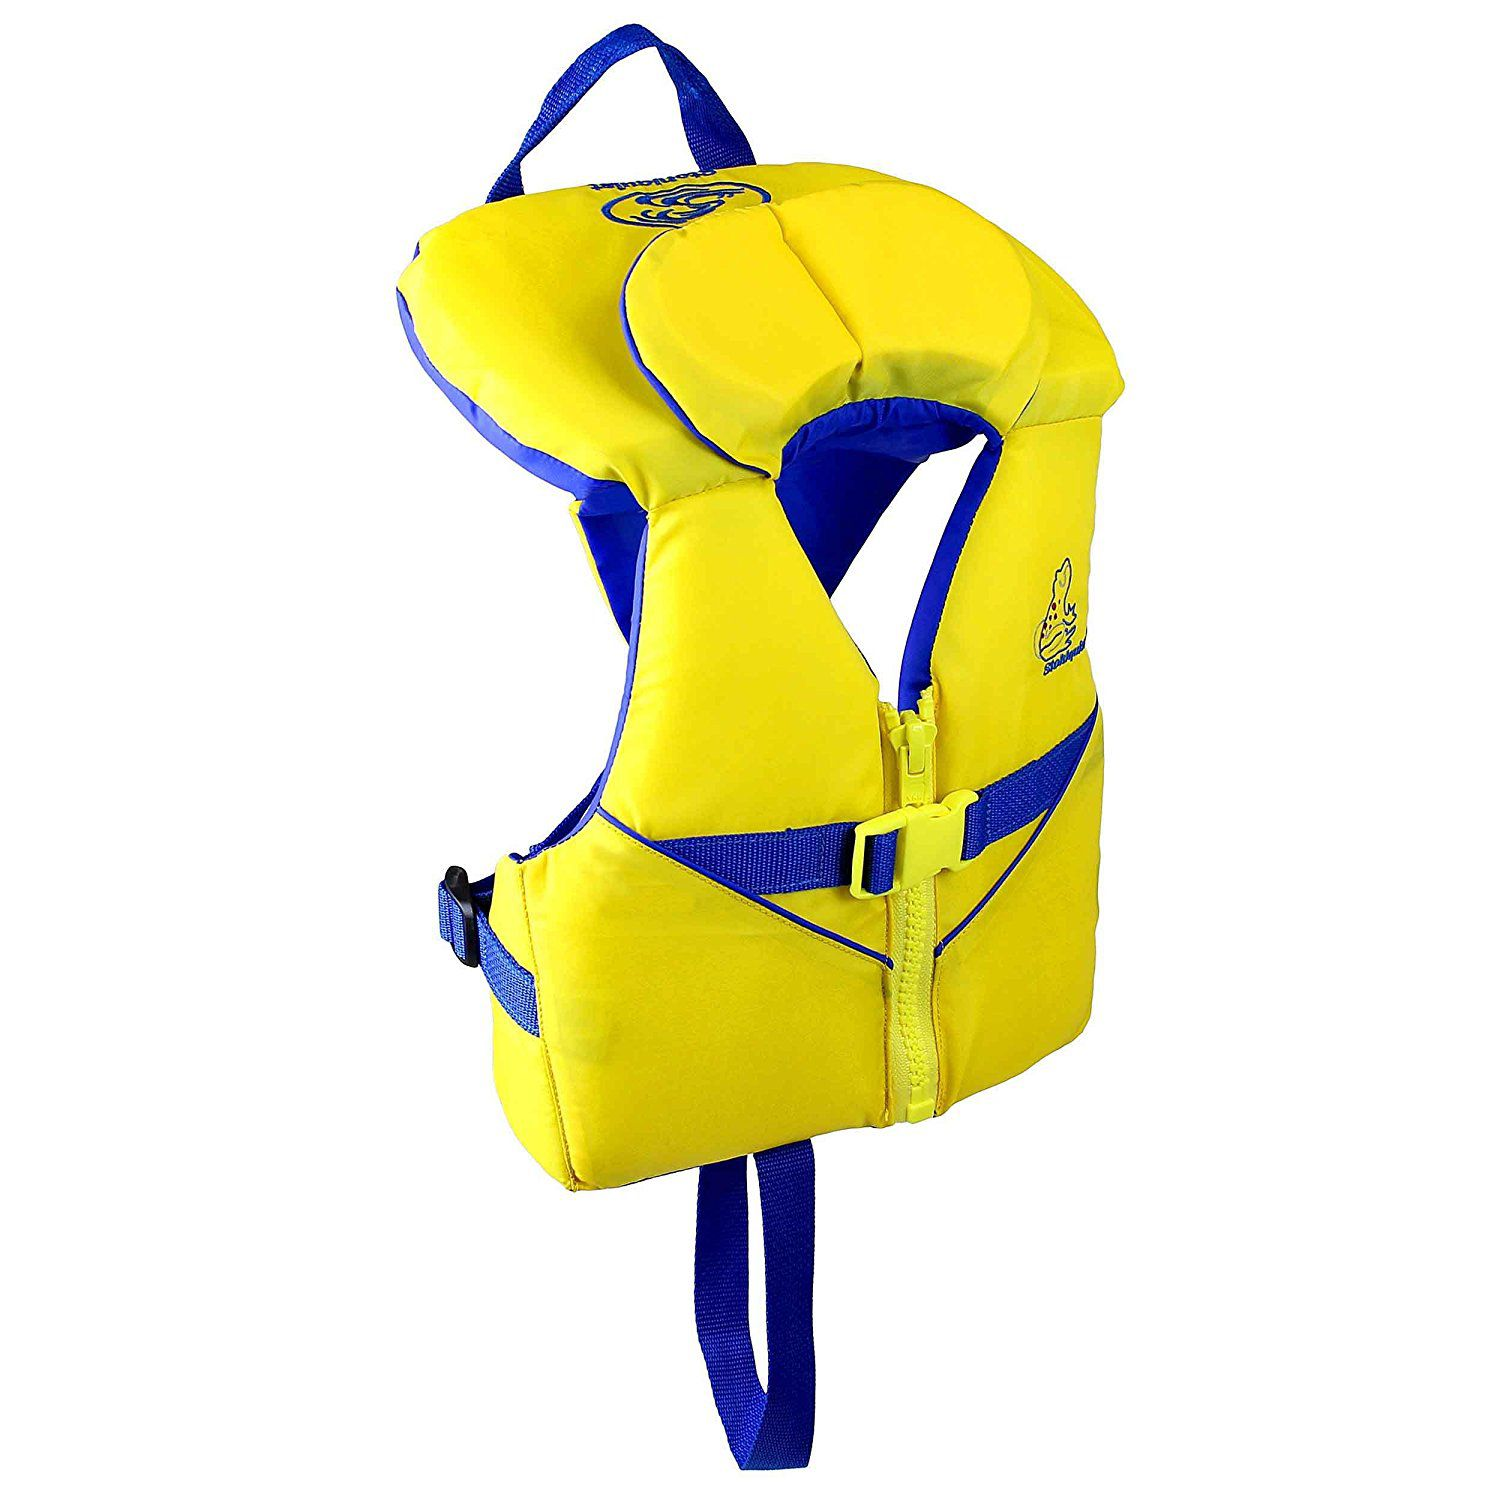 The Best Toddlers Inflatable Life Vests Of 2019